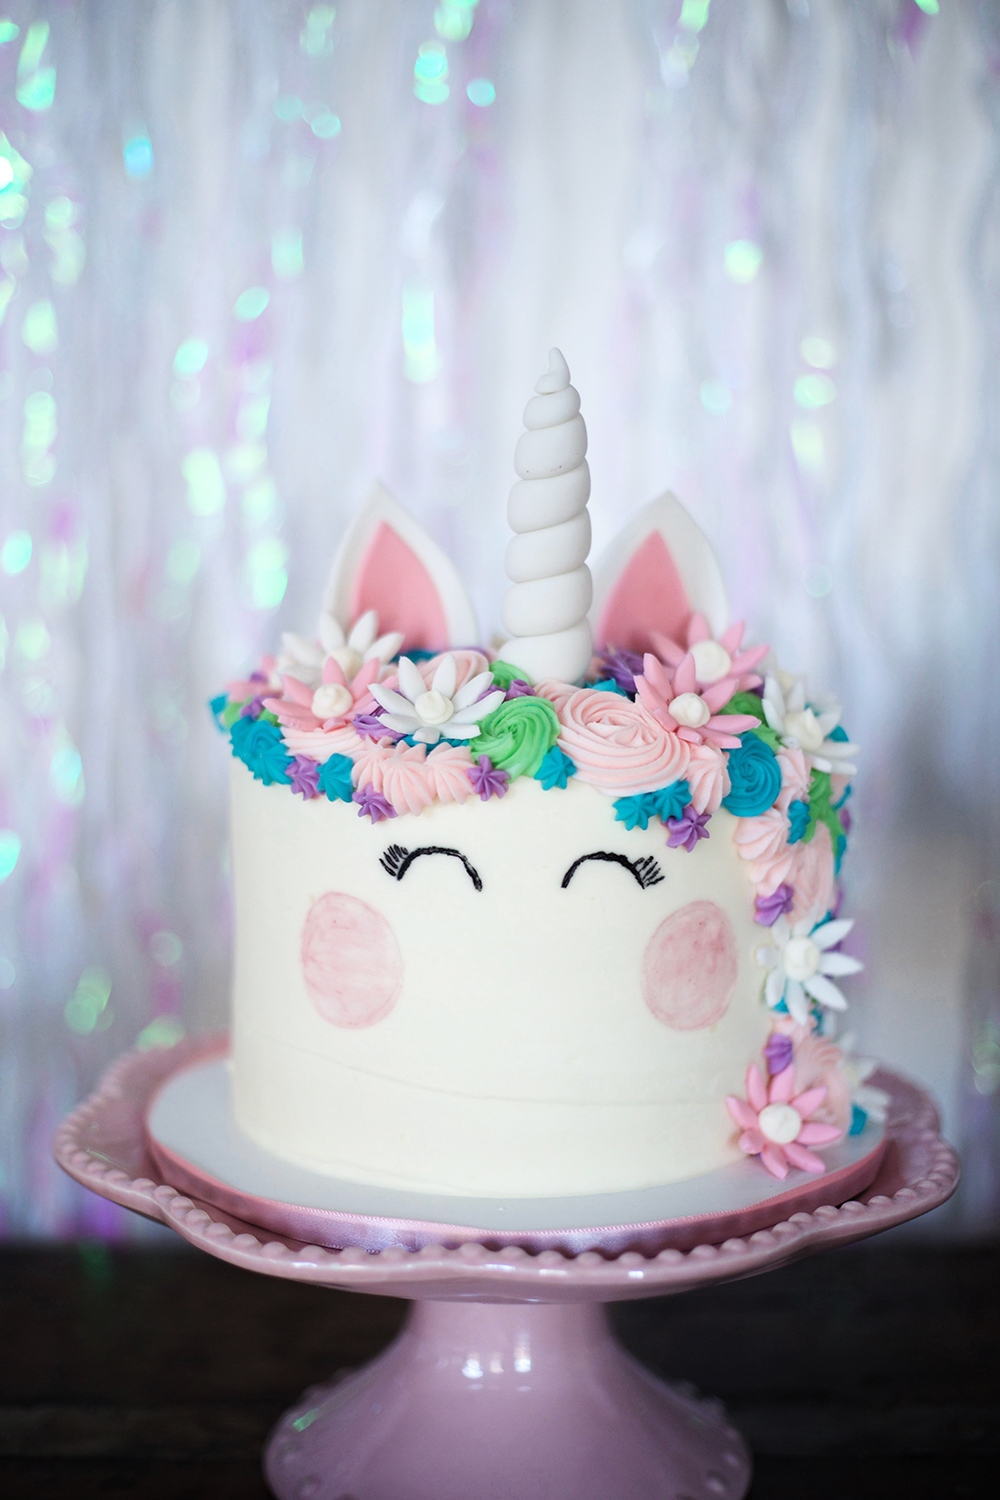 A Magical Unicorn Birthday Party - Chanel Moving Forward